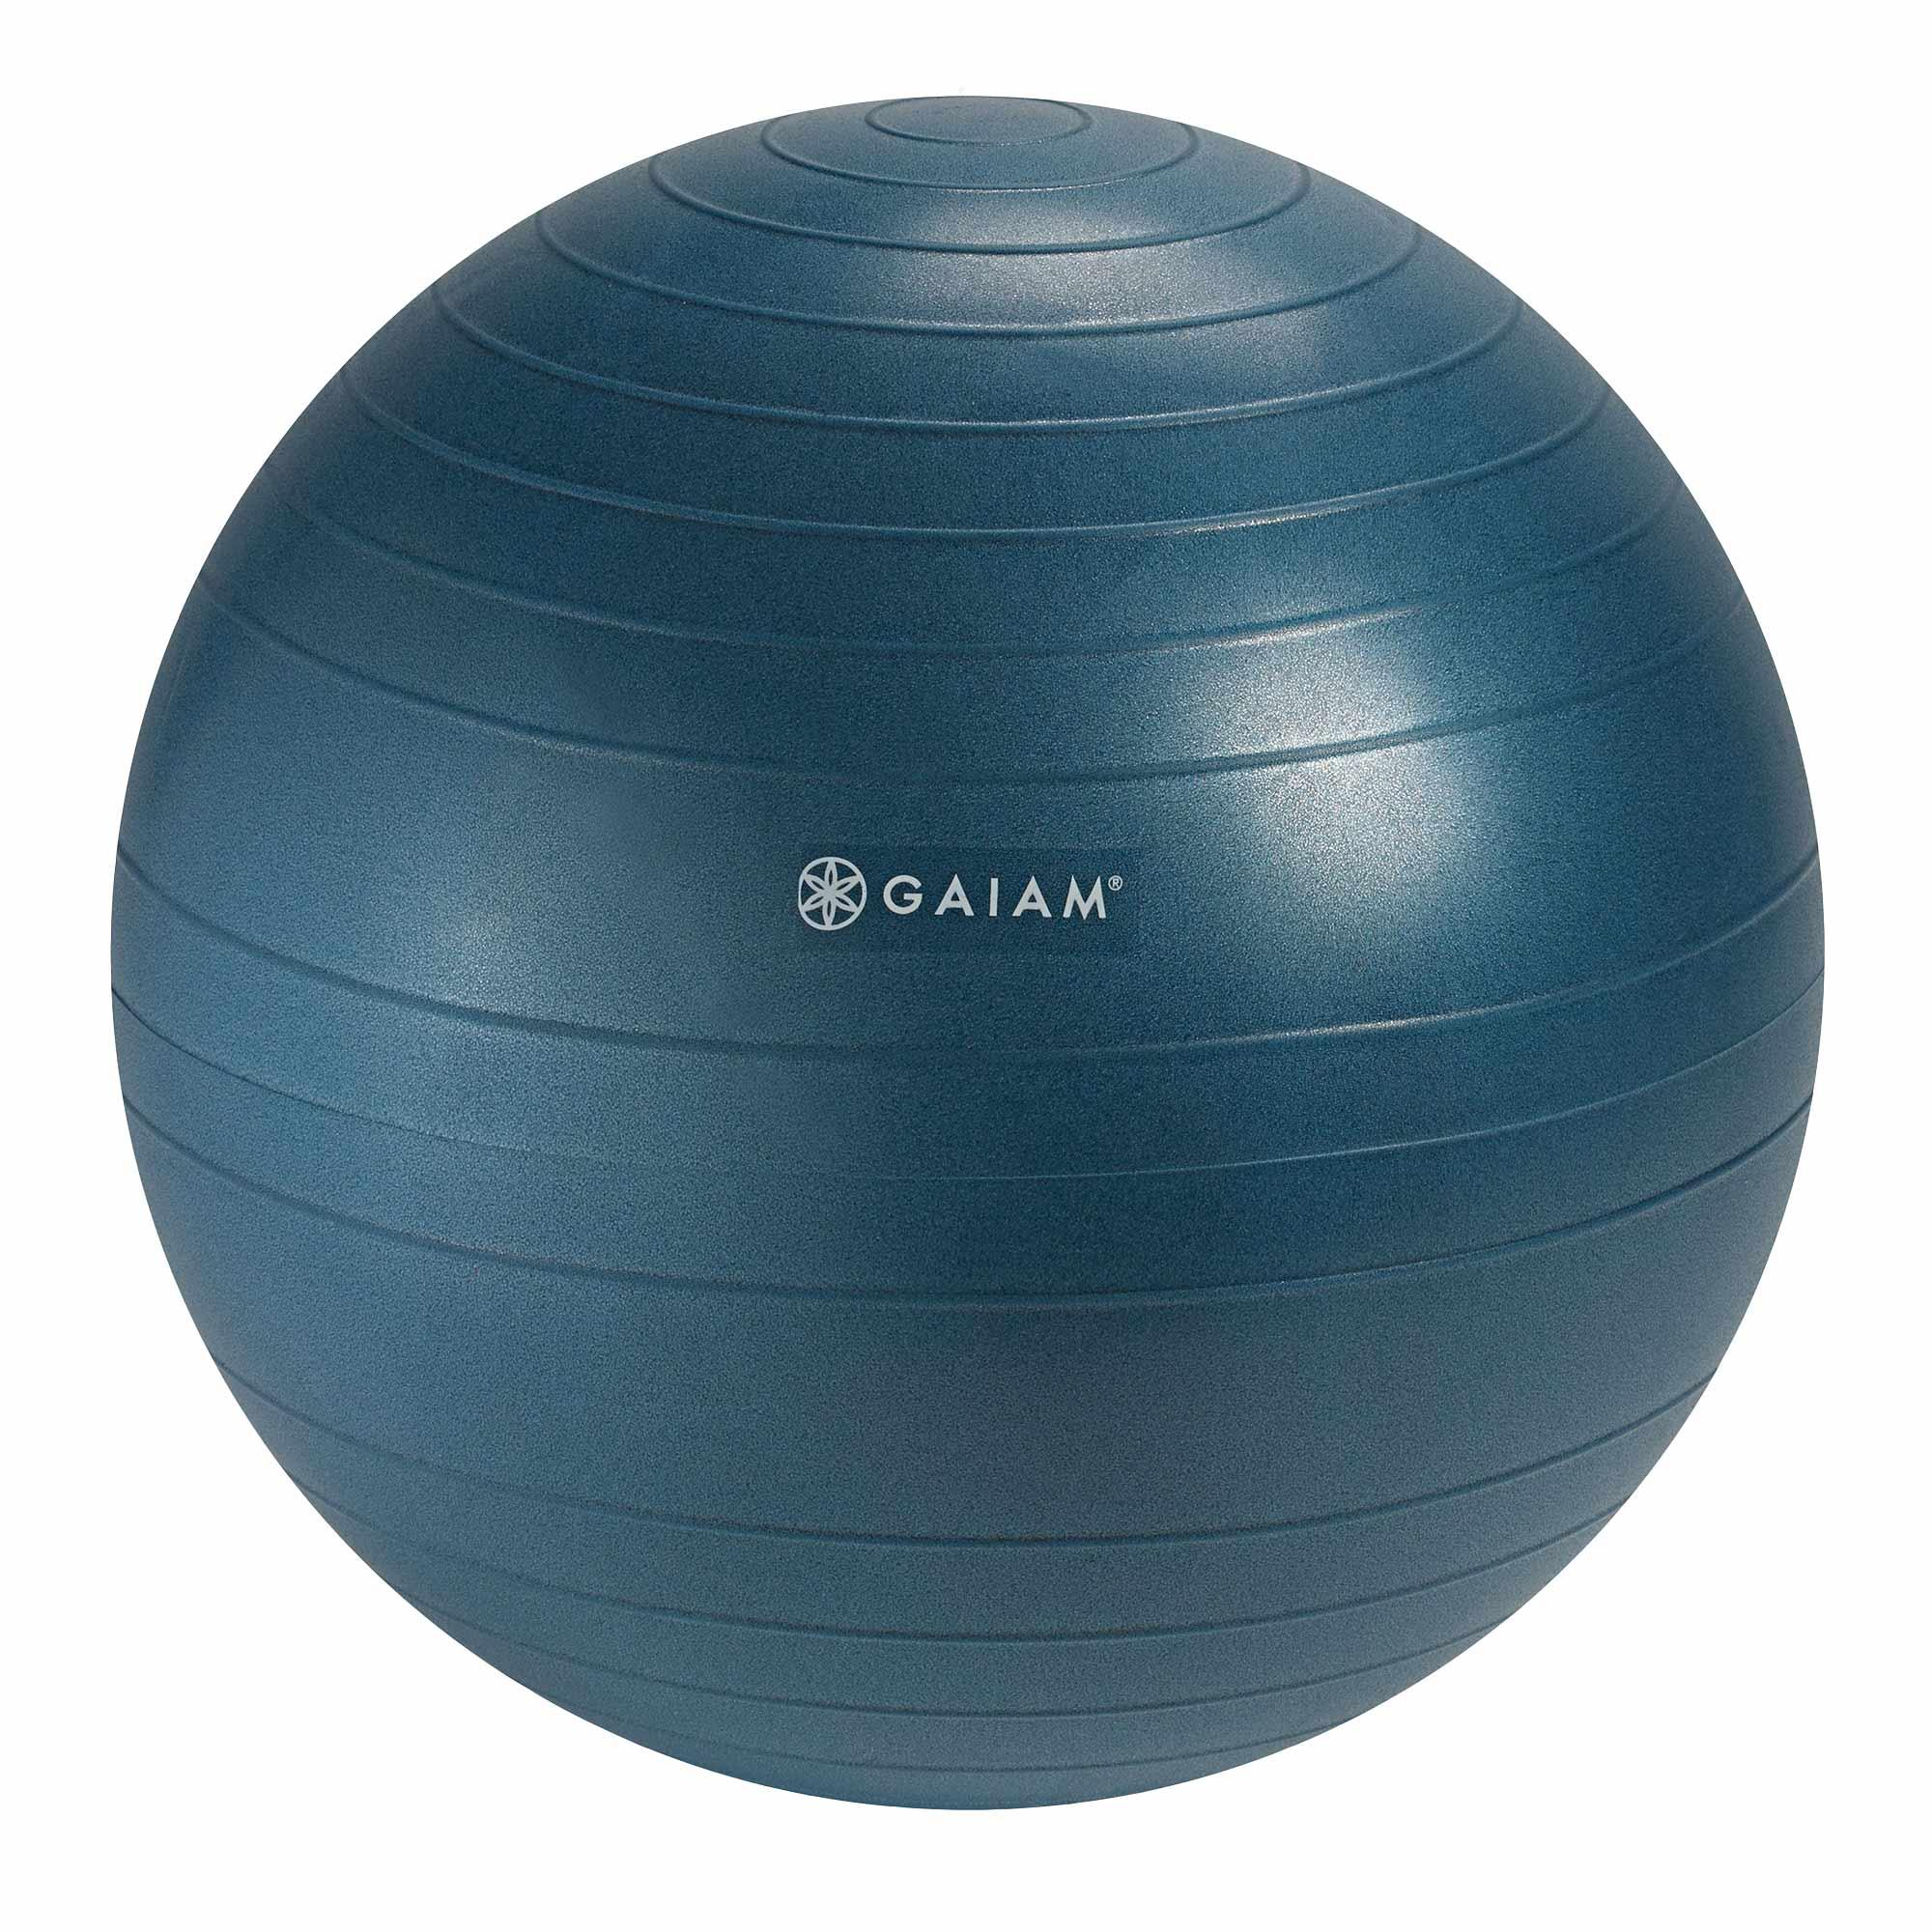 Gaiam balance ball chair replacement ball 52cm blue exercise balls accessories amazon canada - Replacing office chair with exercise ball ...